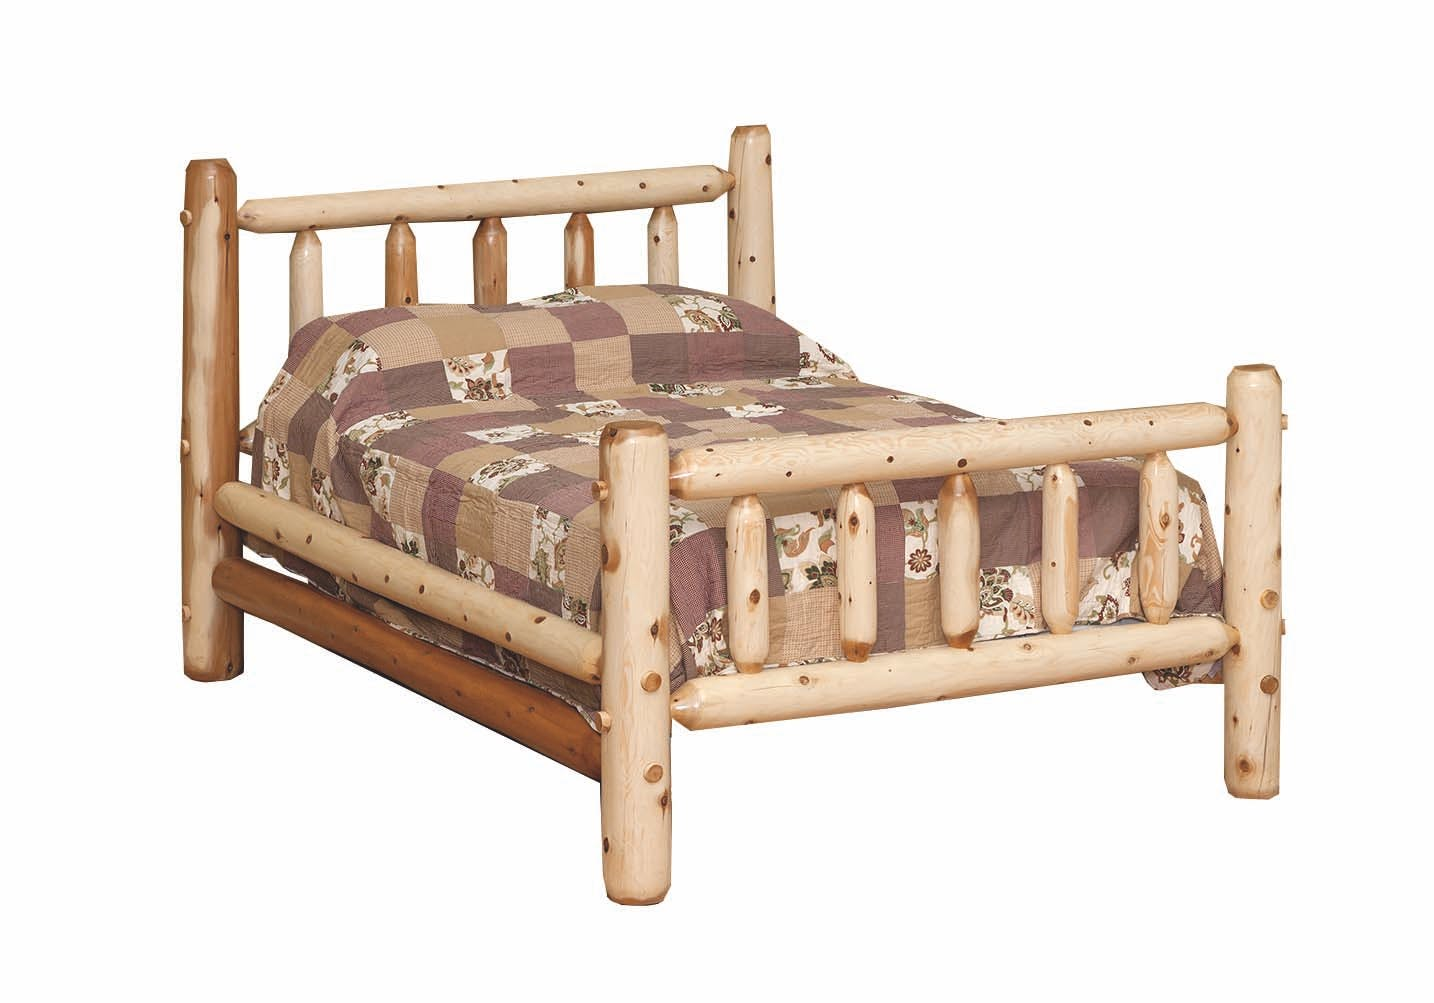 Countryside Rustic Bedroom Queen Classic Log Bed 23024 Love S Bedding And Furniture Claremont